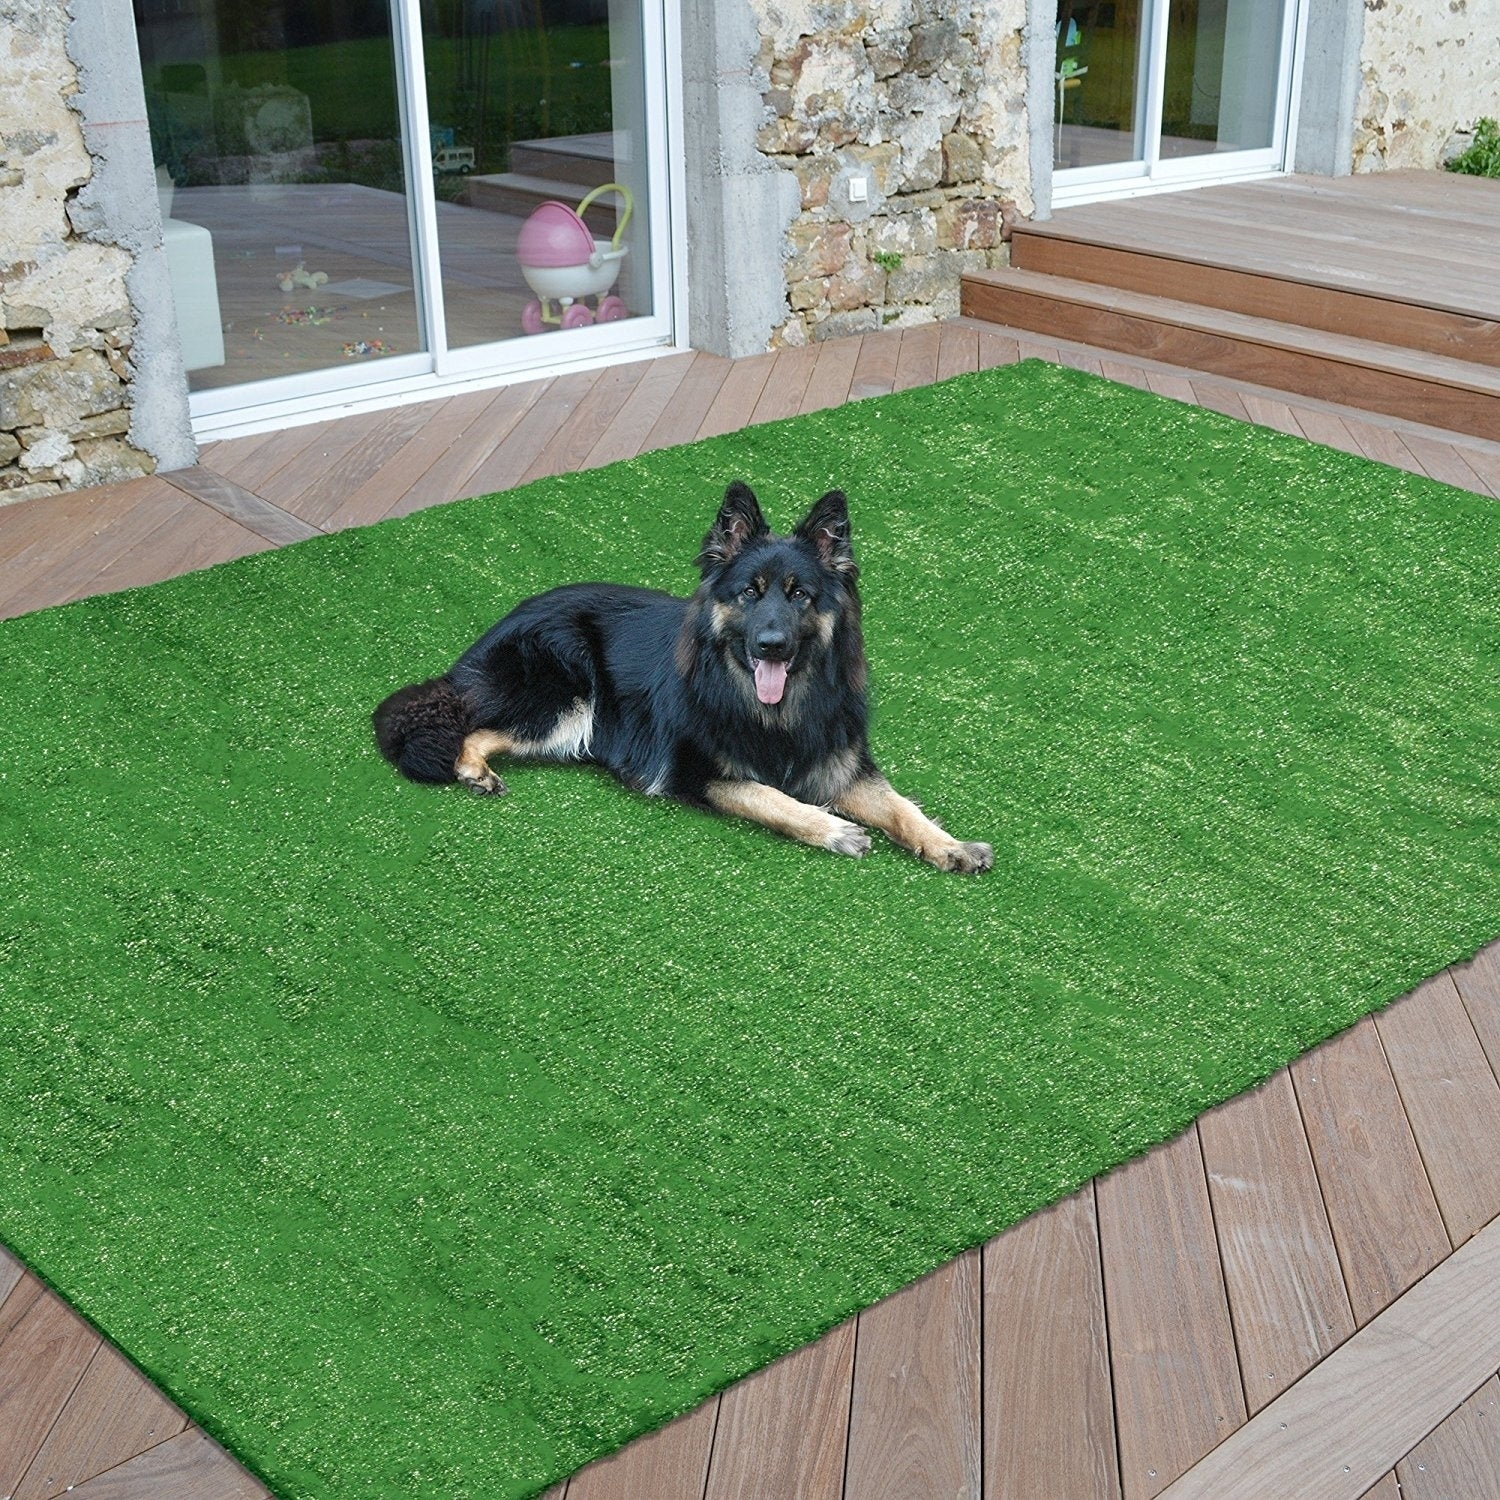 Sweet Home Meadowland Collection Green Artificial Grass Indoor Outdoor Turf Area Rug 6 6 X 9 3